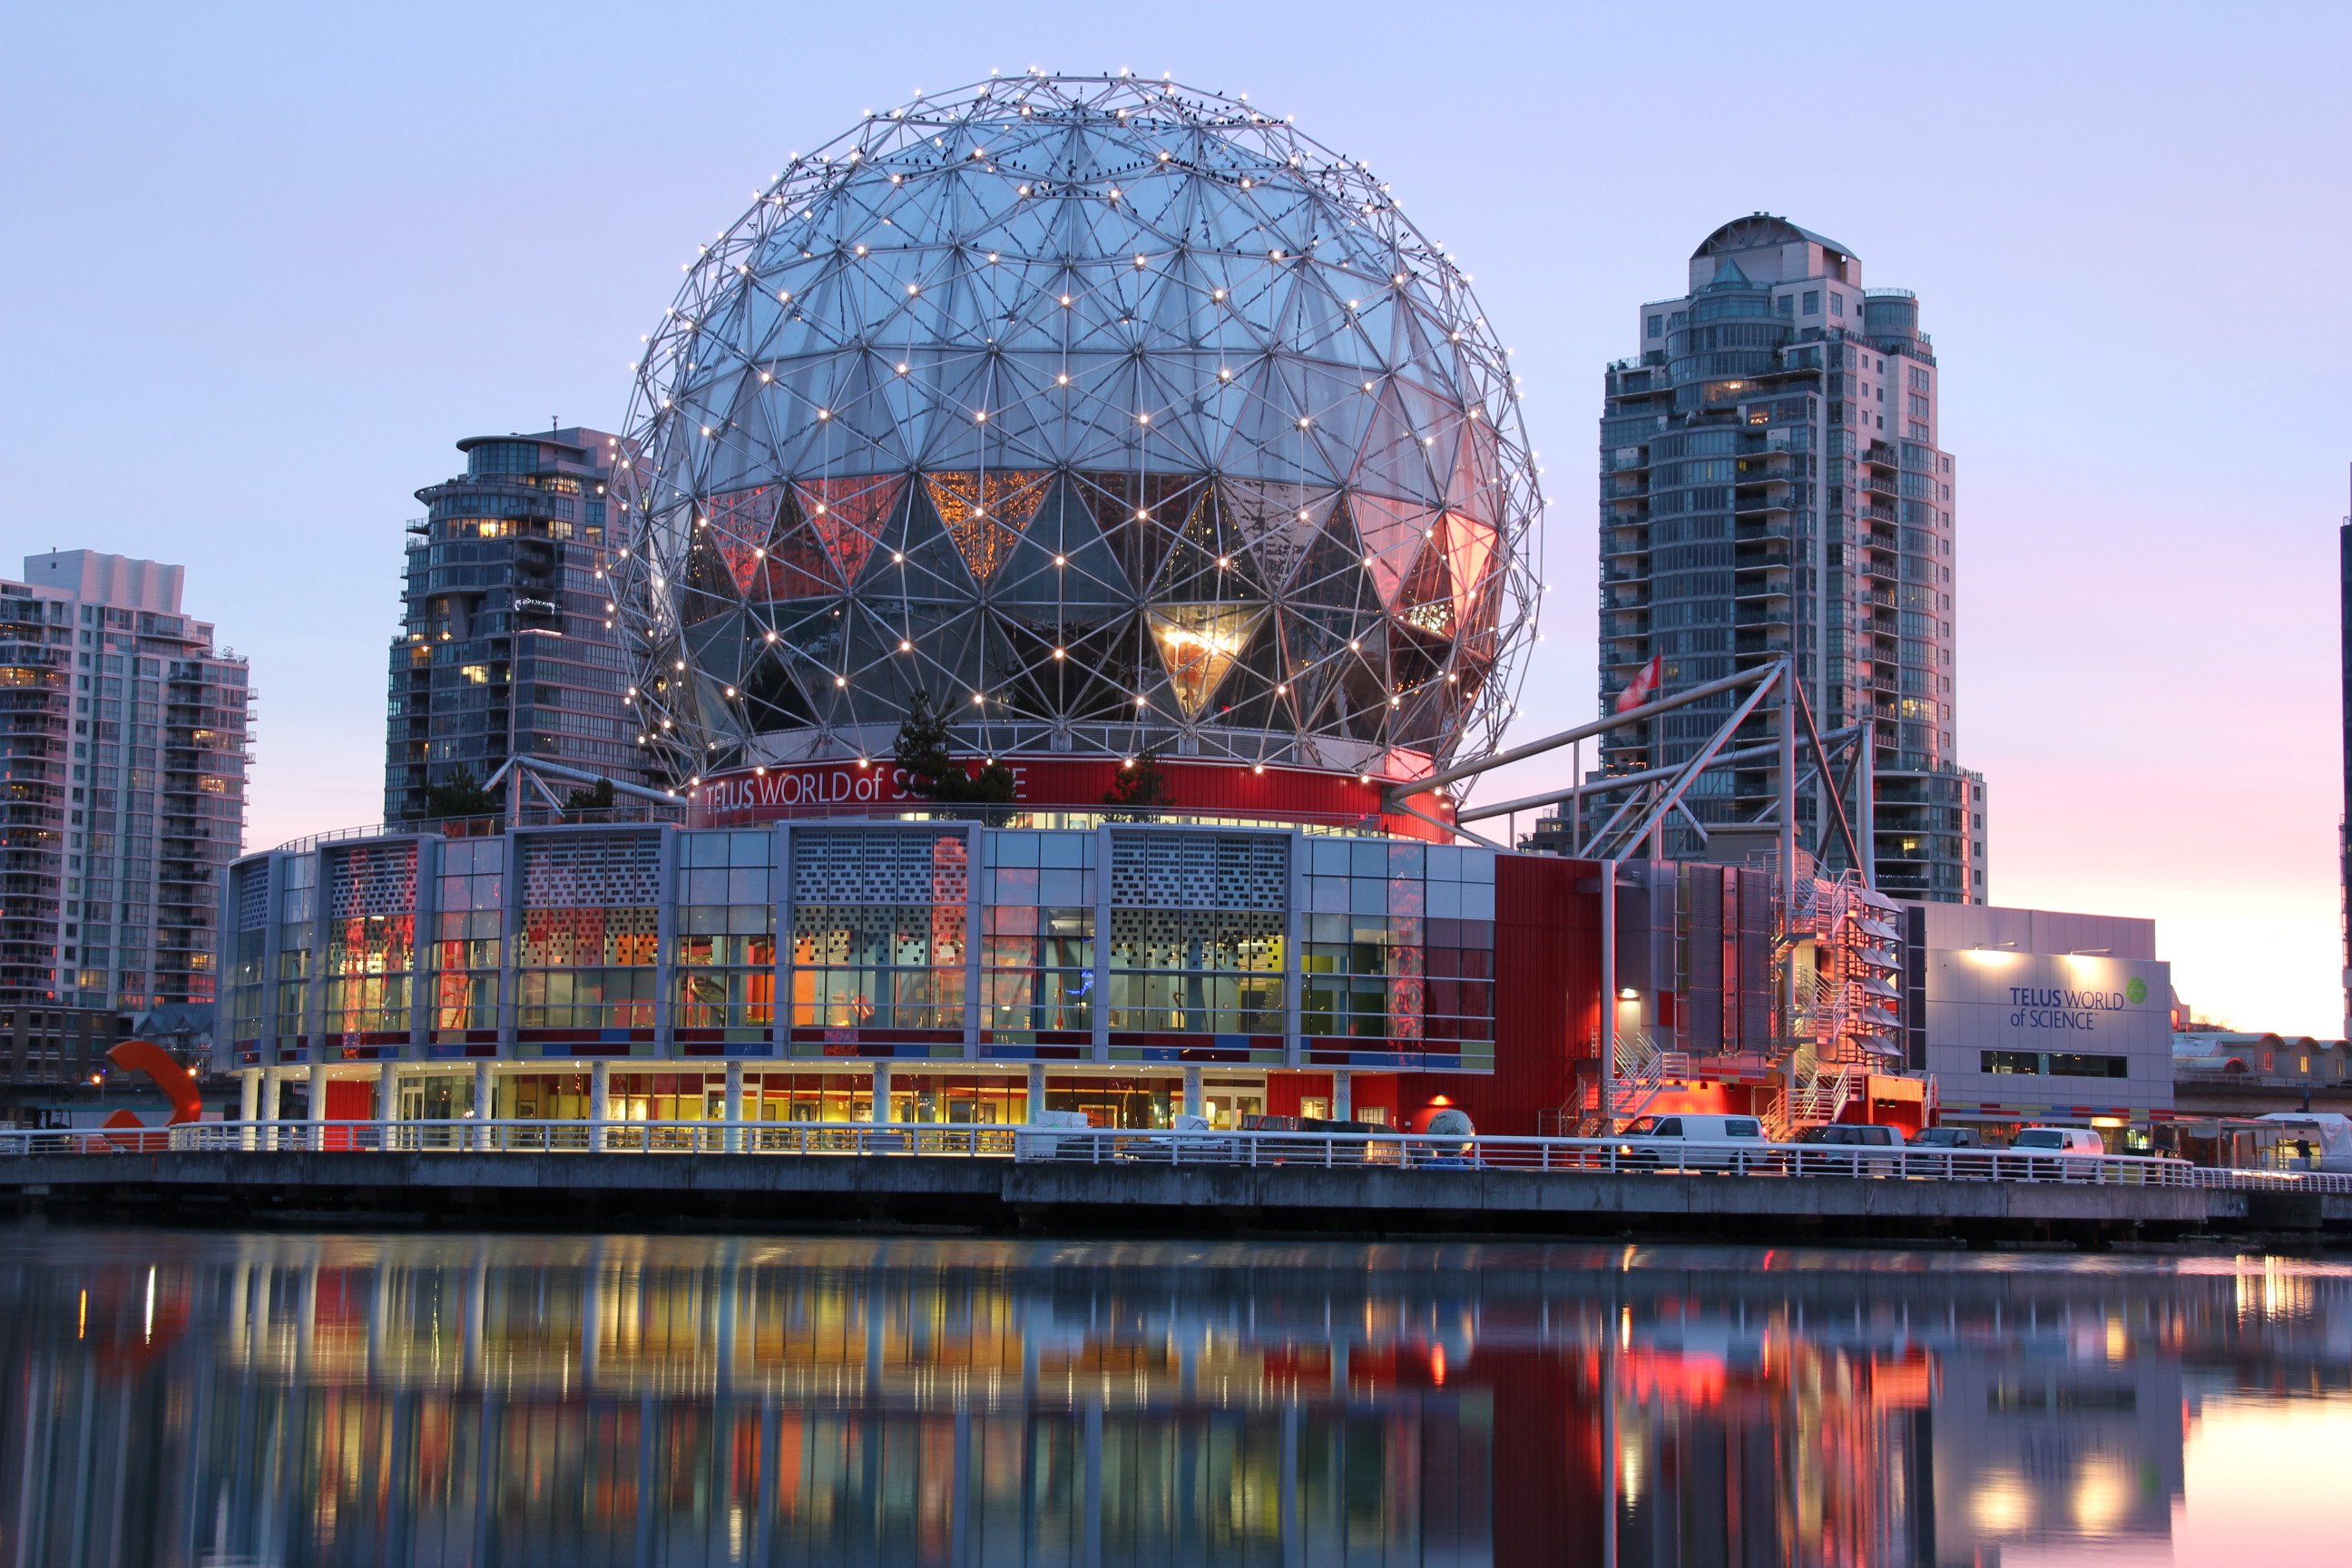 Science World at Telus World of Science, Vancouver.